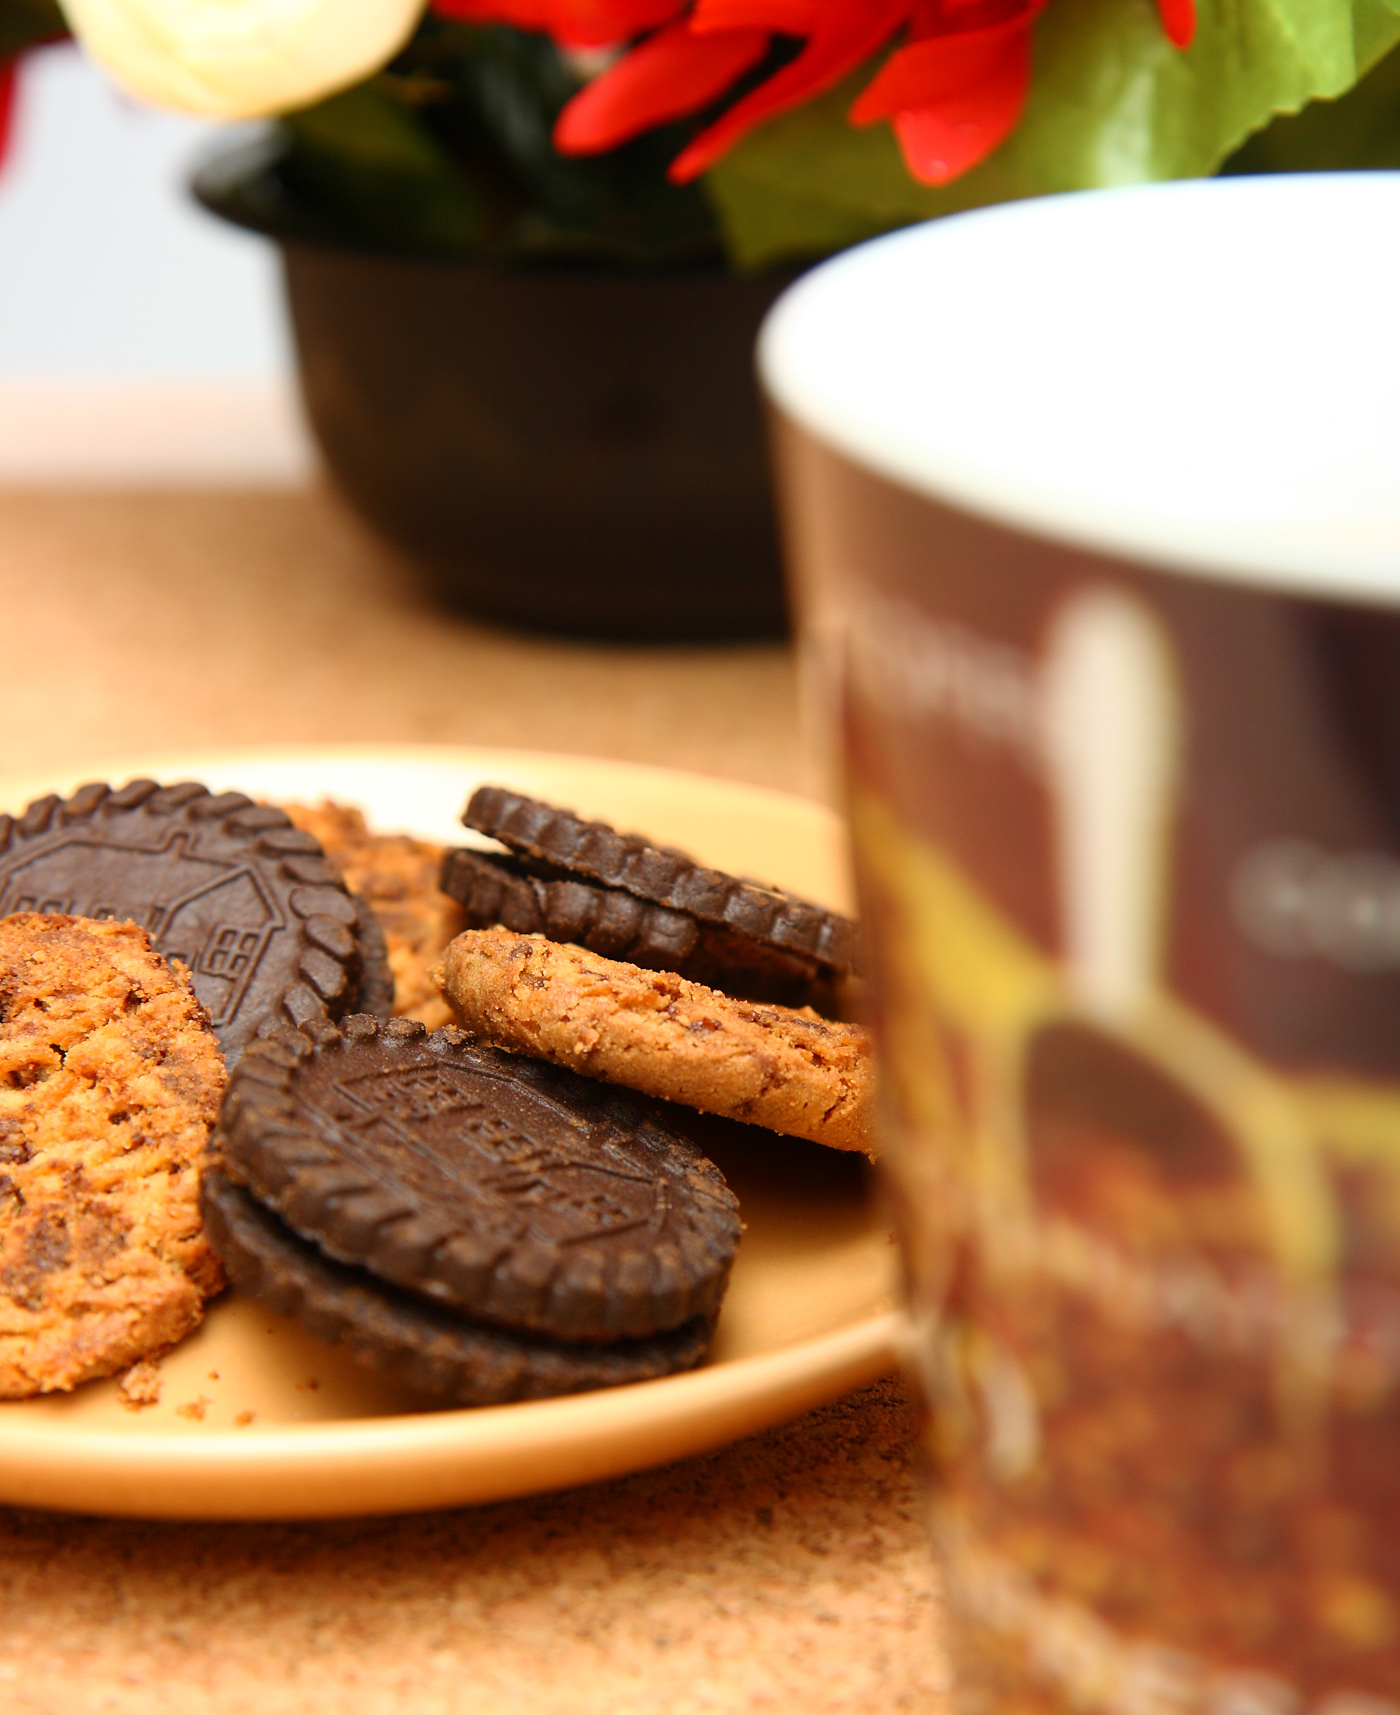 Cookies and coffee as a morning break photo